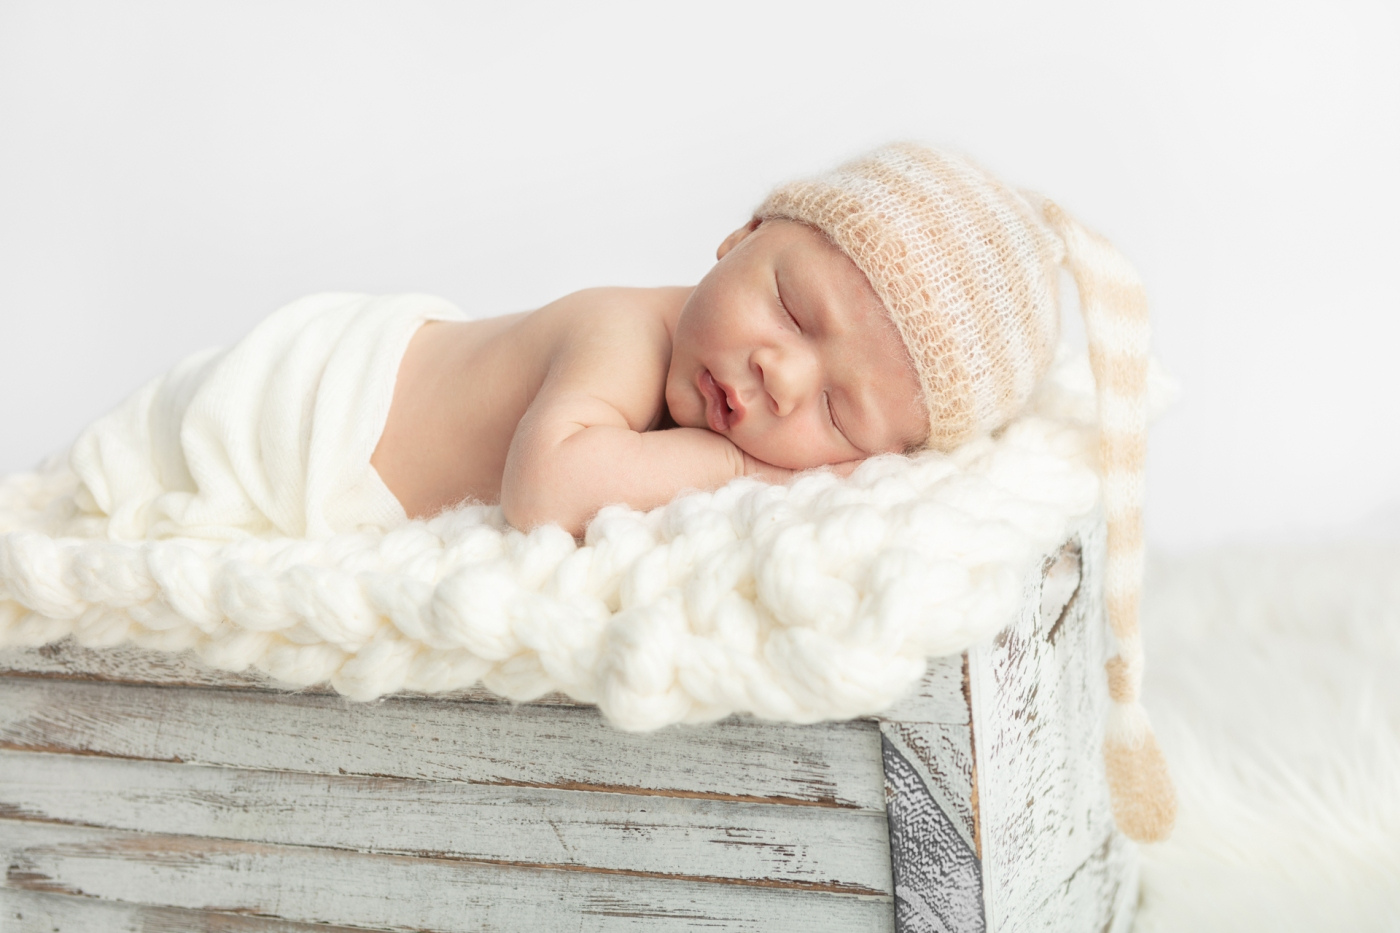 newborn baby boy asleep on his arms with his mouth slightly open; Karen Kahn